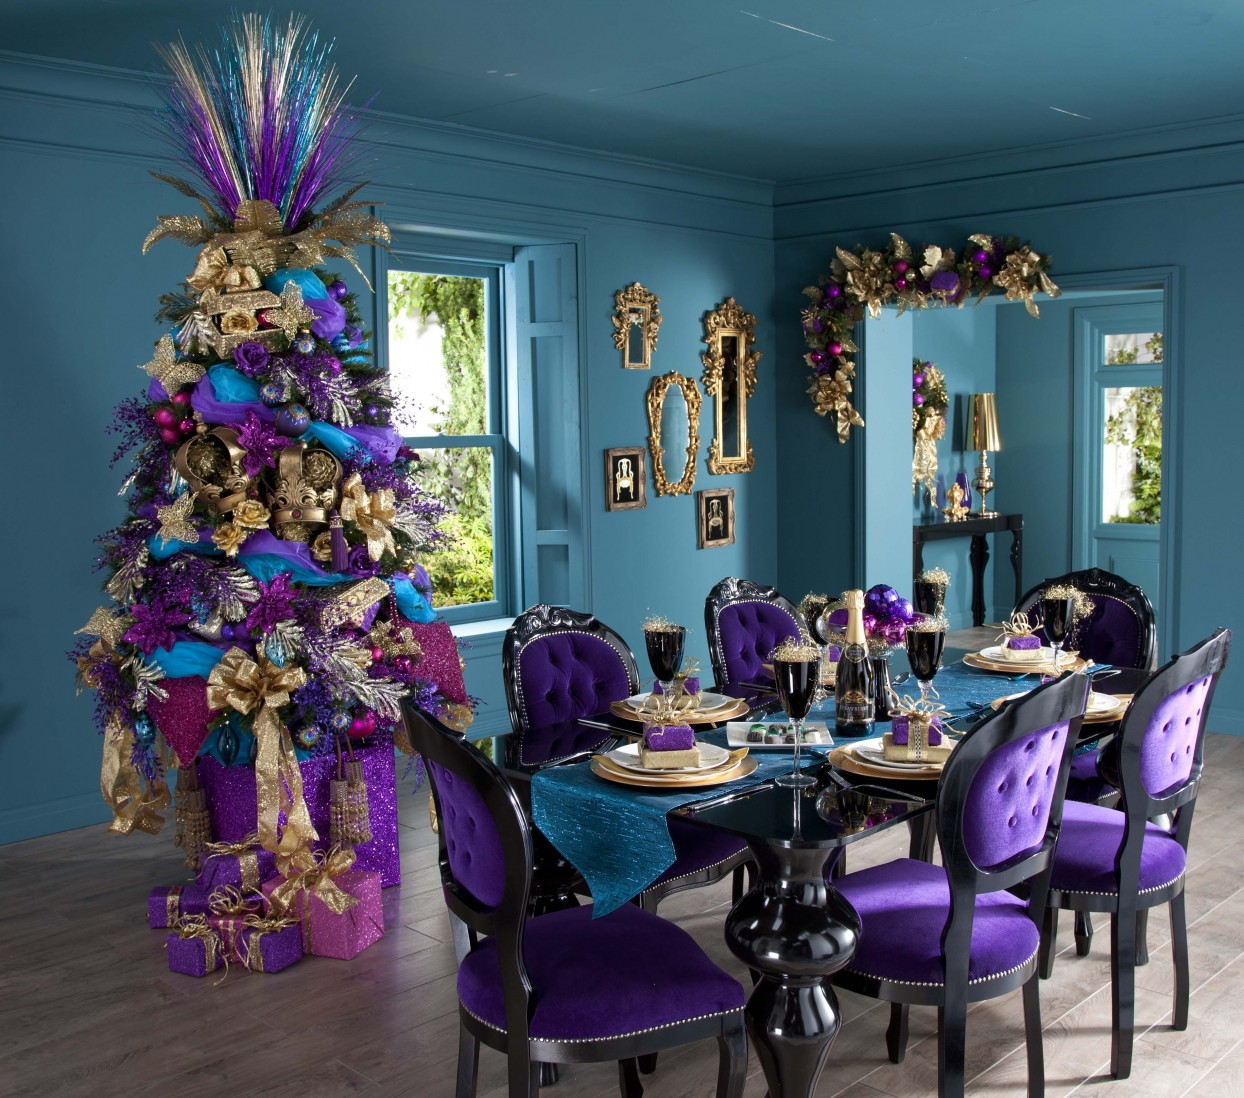 Color schemes for christmas trees - Yet Fans Of Royal Grandeur And Extravagance Will Definitely Love Such A Colour Scheme